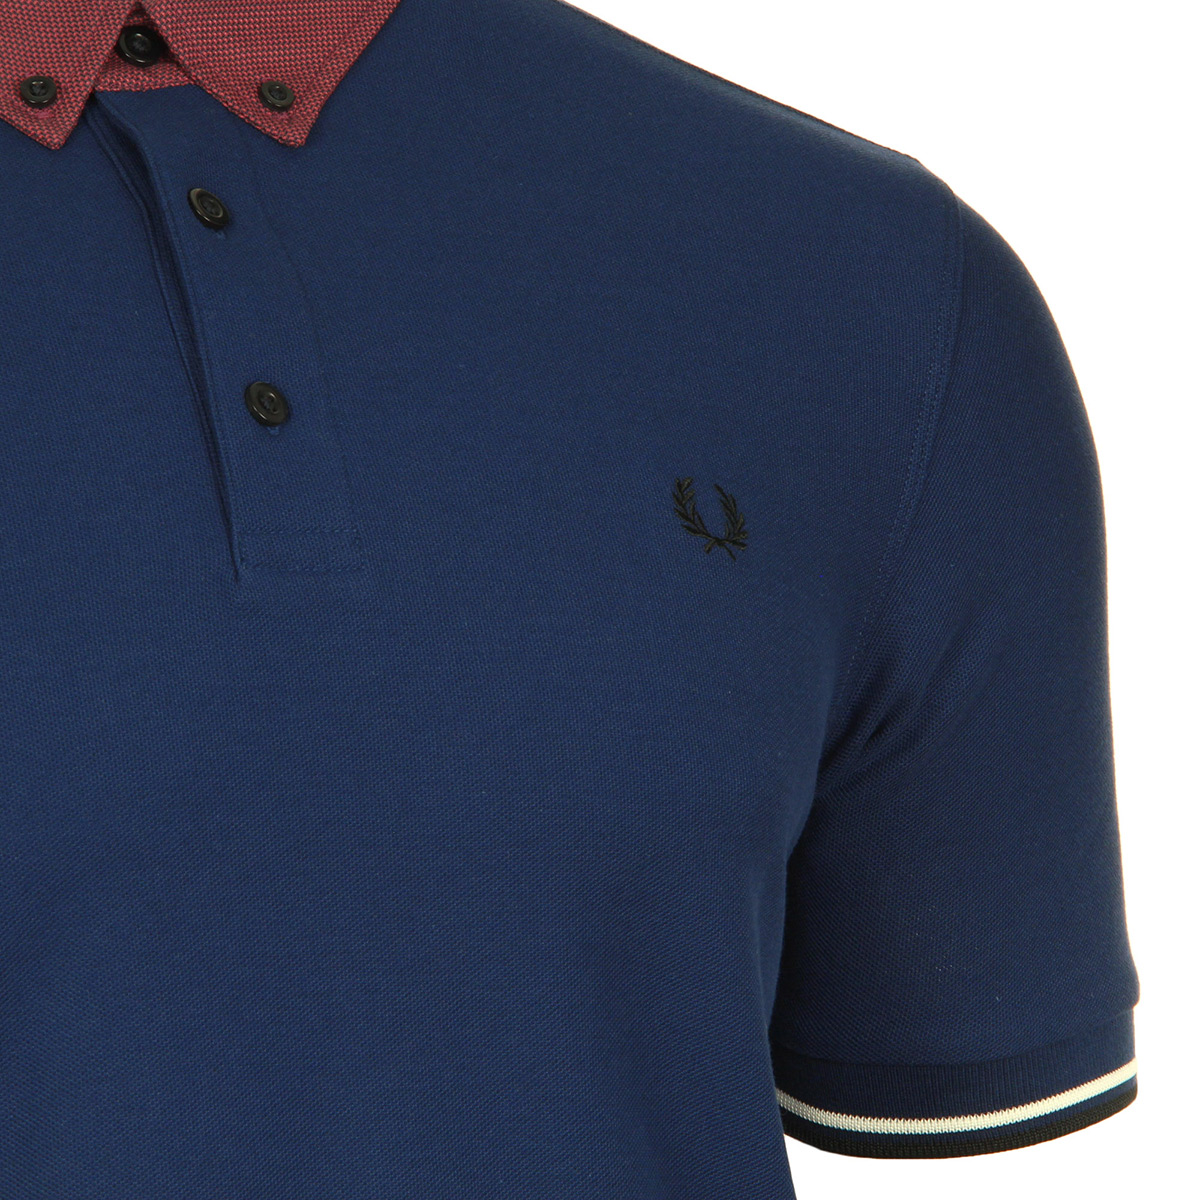 Fred Perry Woven Collar Pique Shirt French Navy M2576143, Polos homme